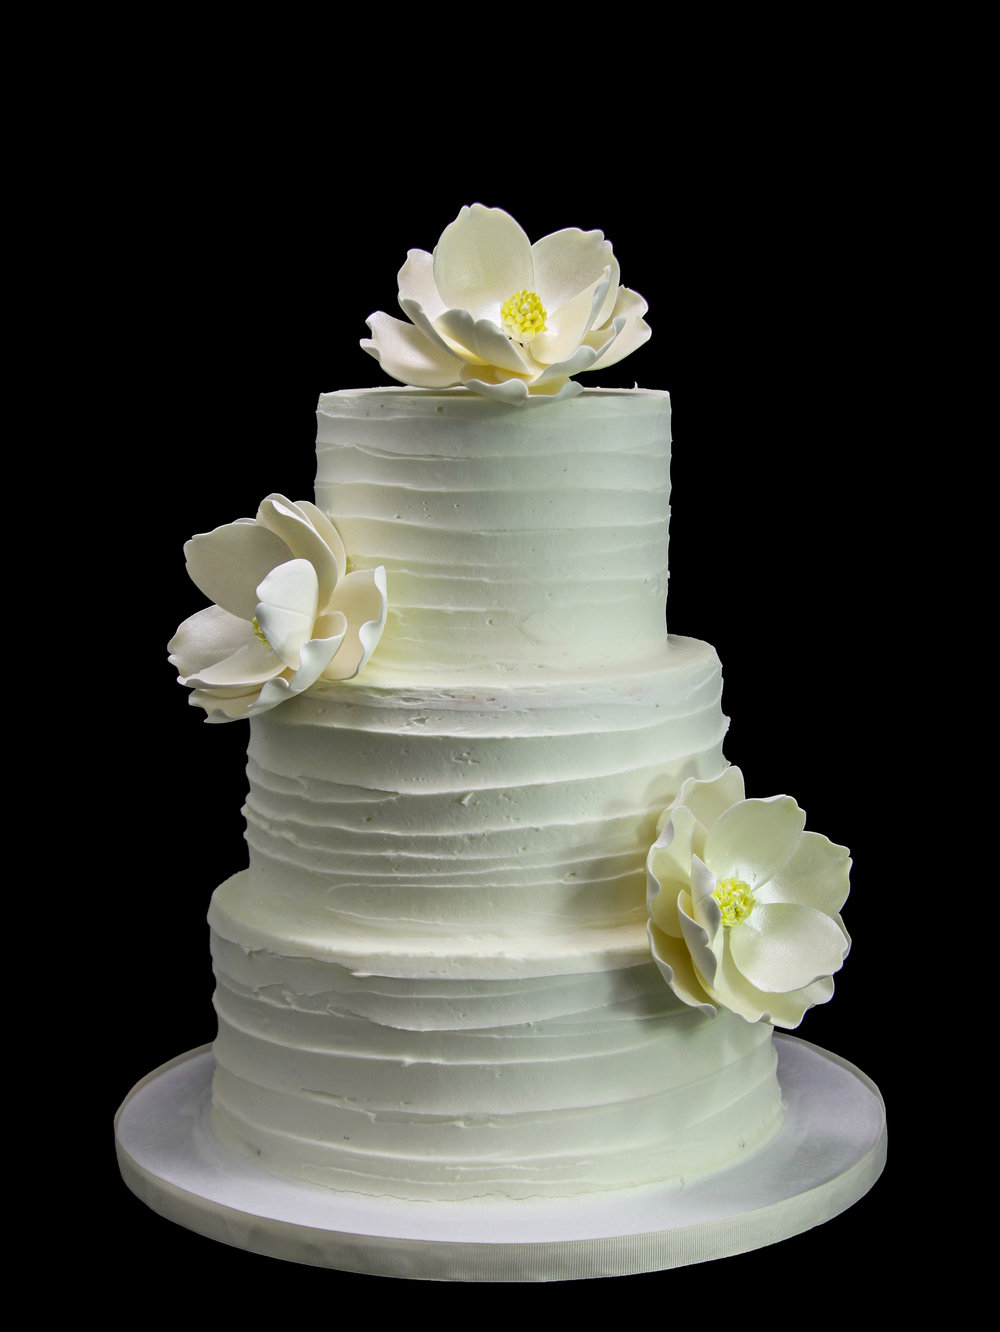 Magnolias Horizontal Old Wedding Cake.jpg